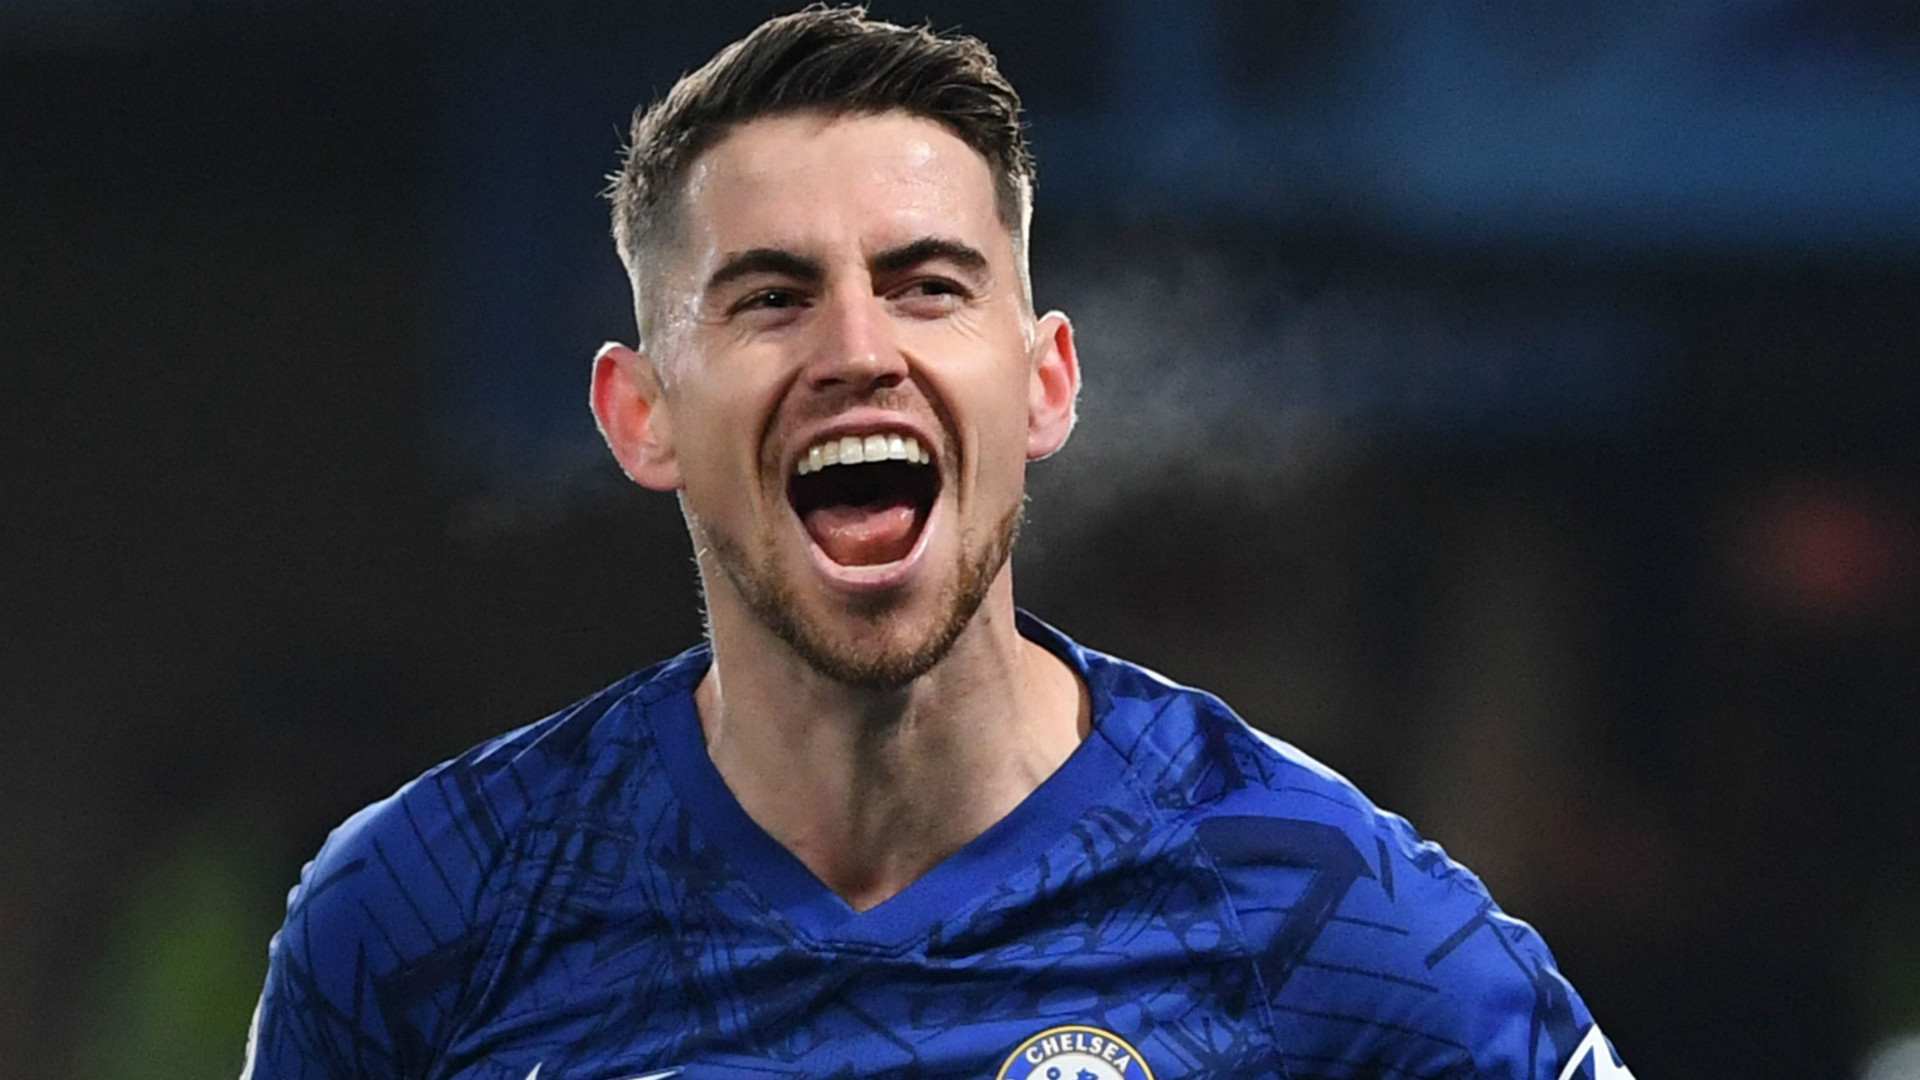 'If an important team calls, why not?' - Jorginho's agent hints at Juventus move